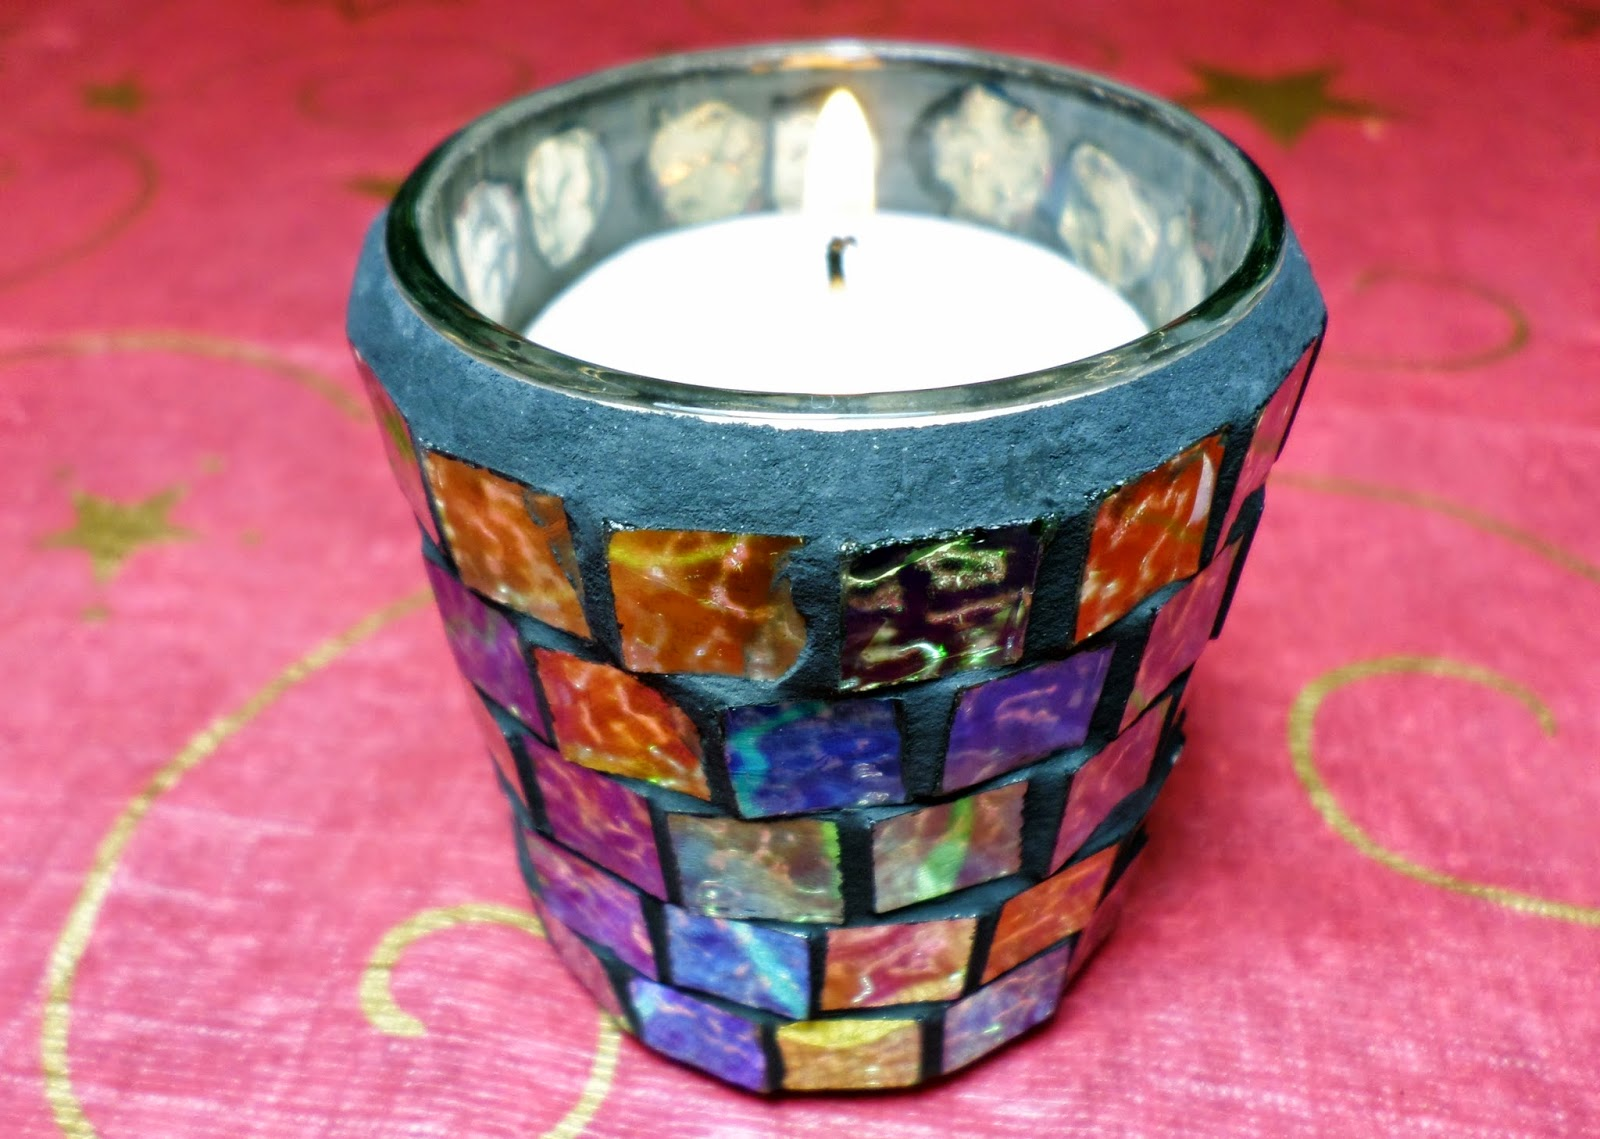 Yankee Candle Simply Home Stony Cove in Masaic Sampler Votive Holder